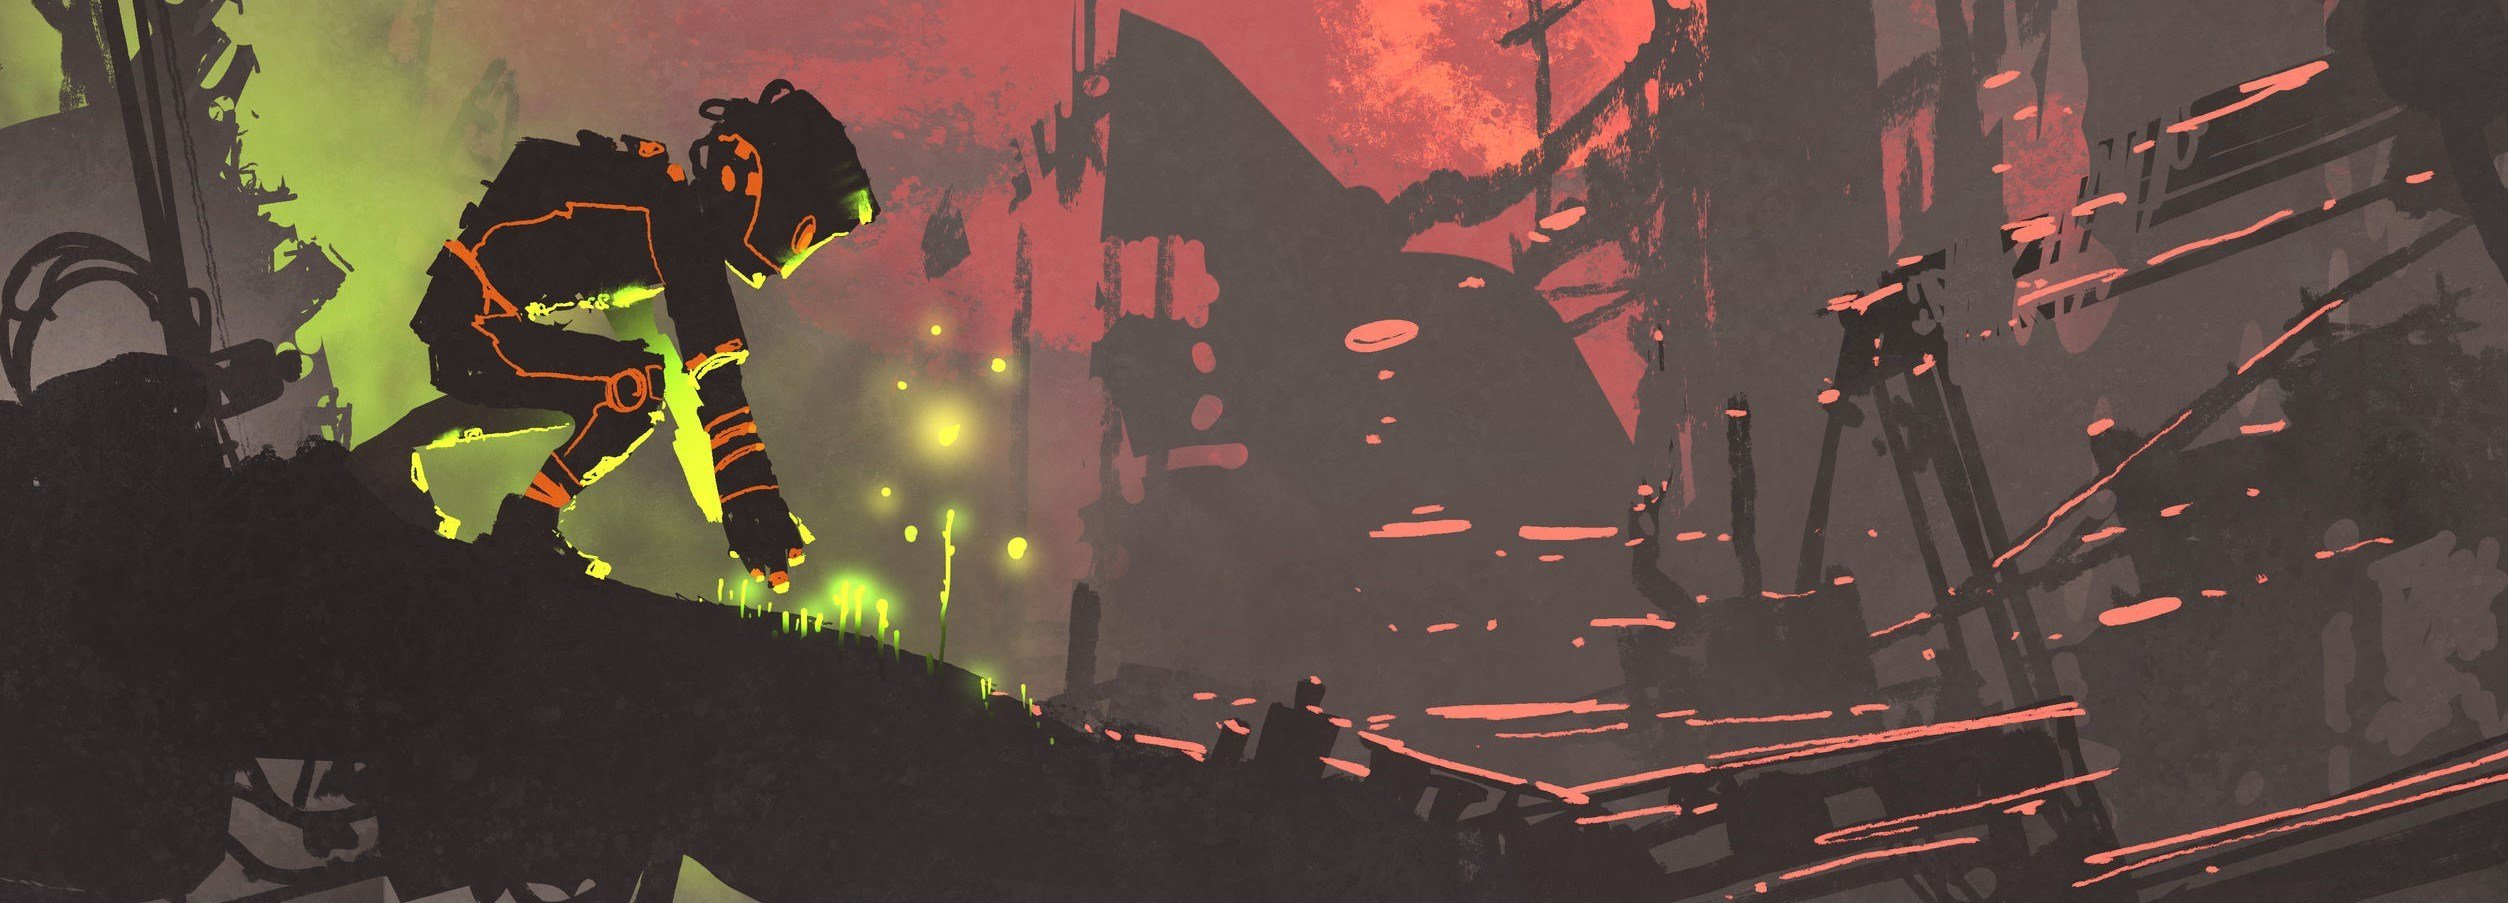 the robot planting seeds in the ruin city at sunset, illustration painting